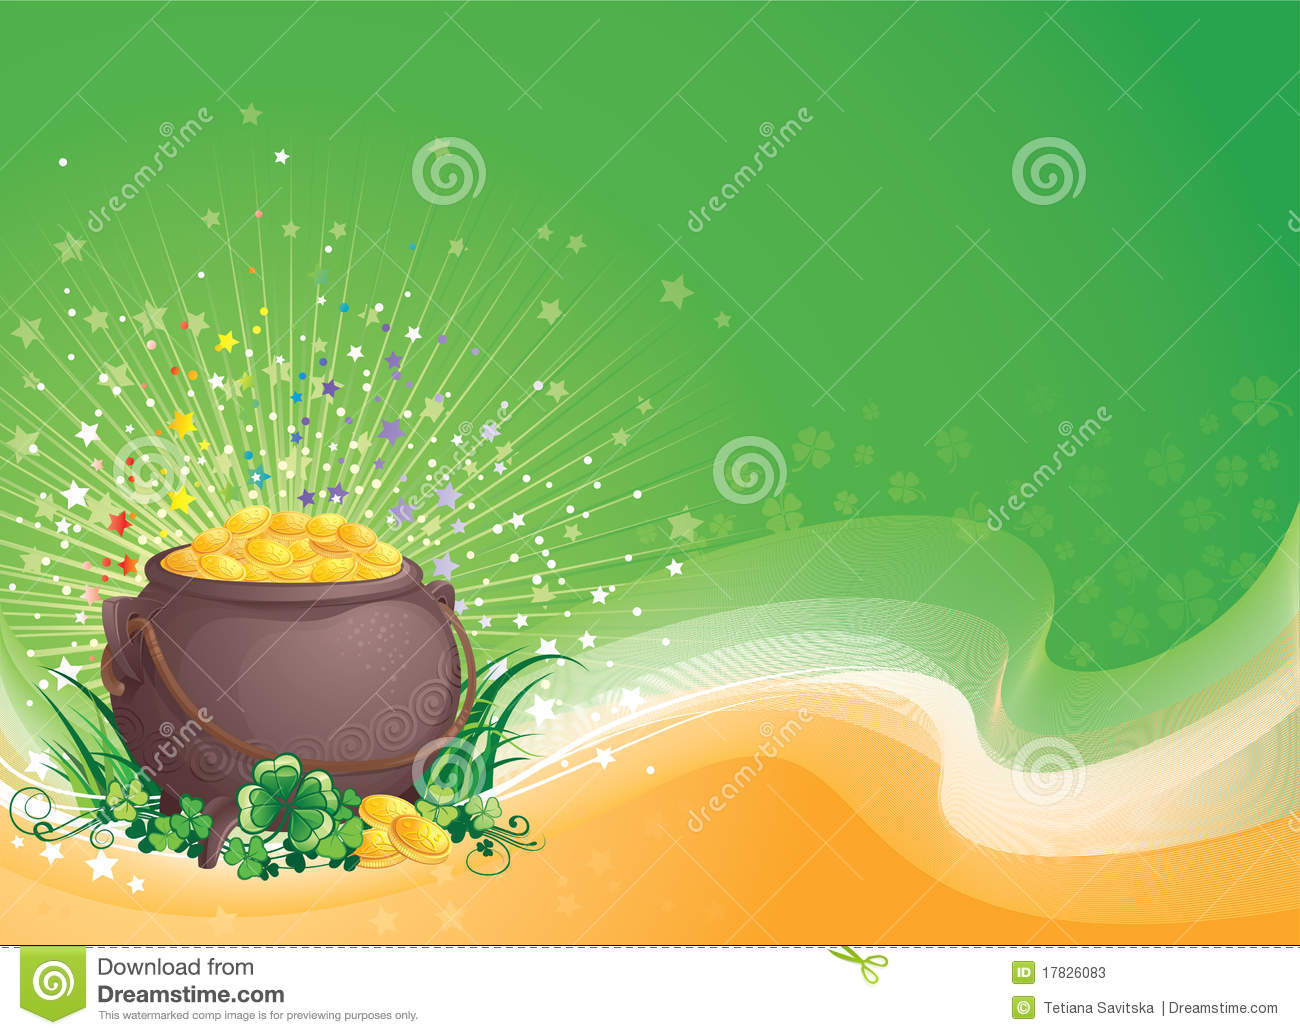 A Pot Of Gold On Saint Patrick's Day. Stock Vector